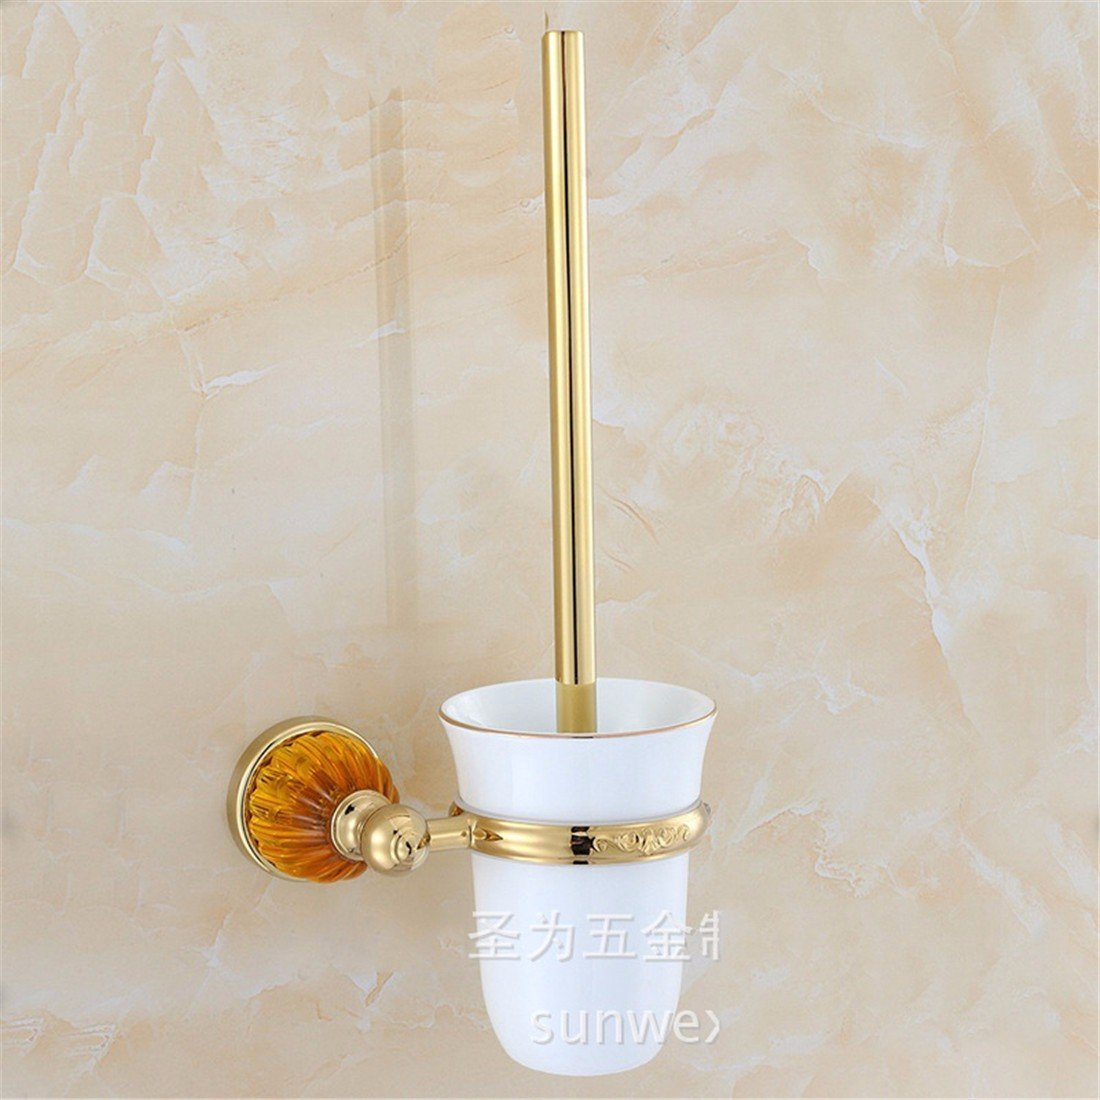 LAONA European style gold zinc alloy amber base bathroom fittings towel ring single and double rod,Toilet brush